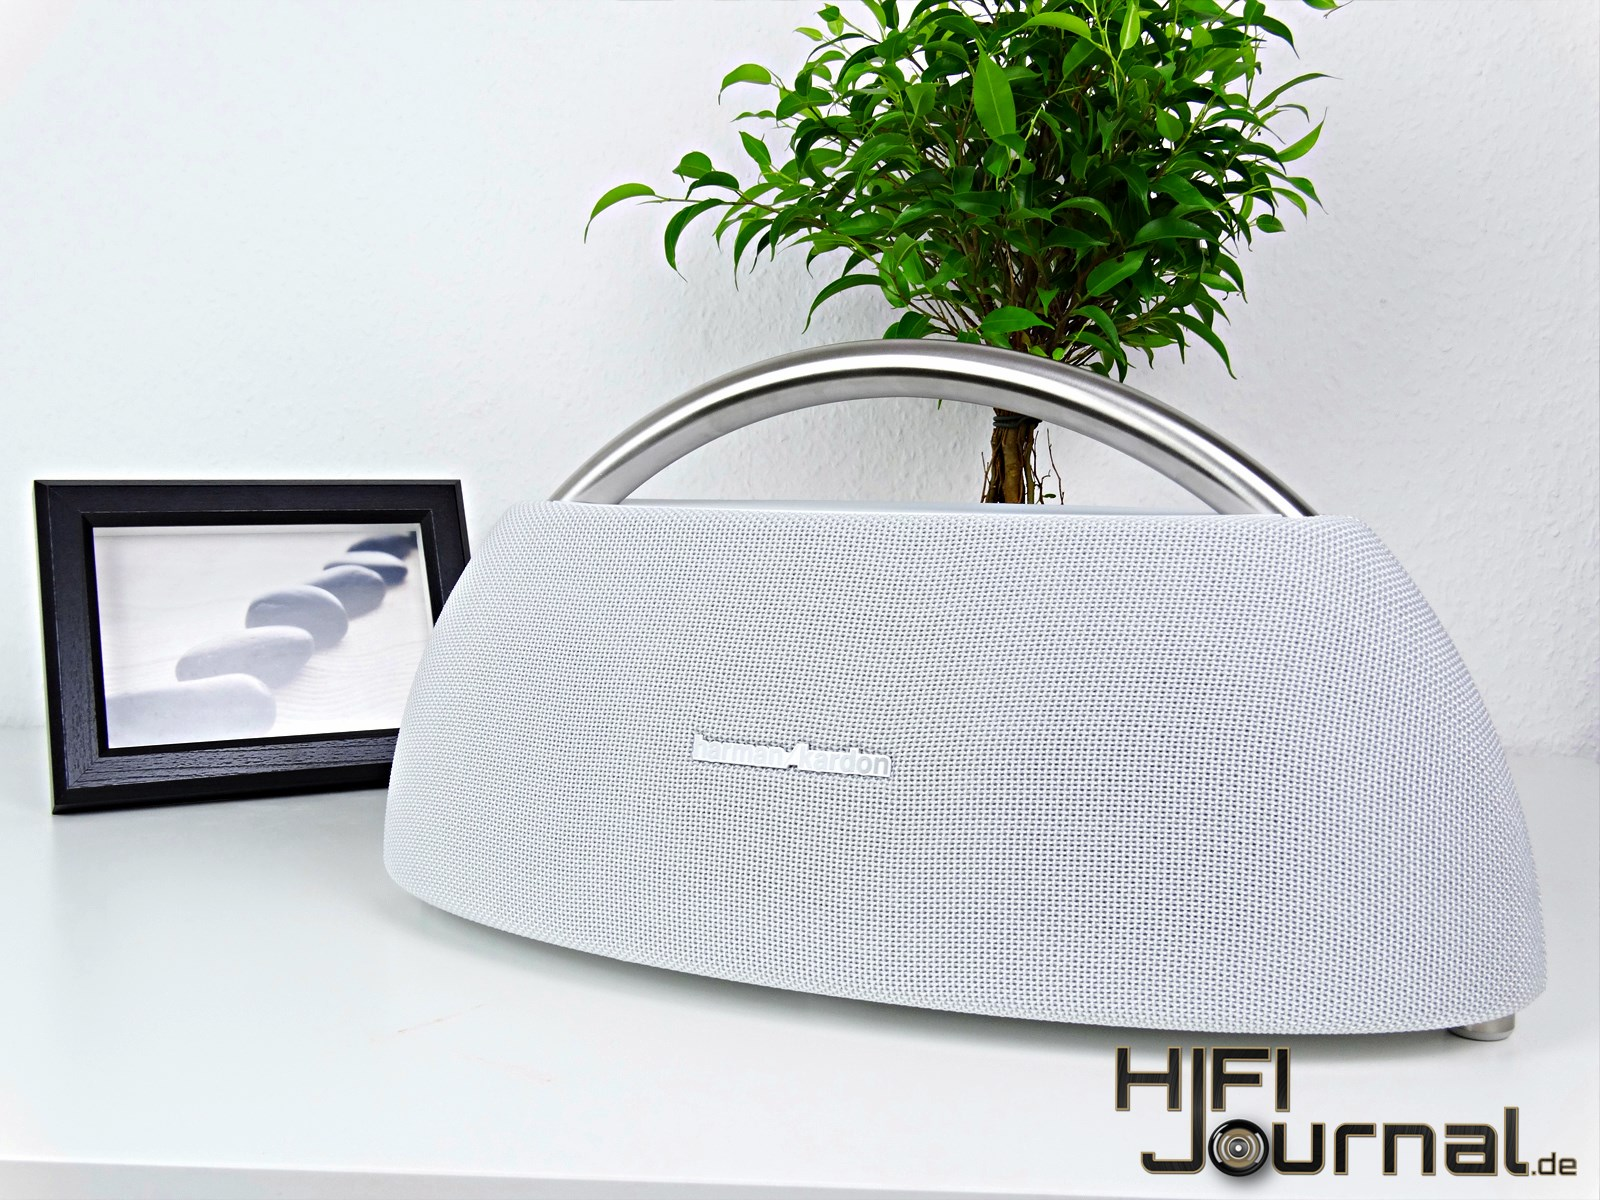 Test Harman Kardon Go Play Hifi Journal Mini Speaker Black Goplay 17